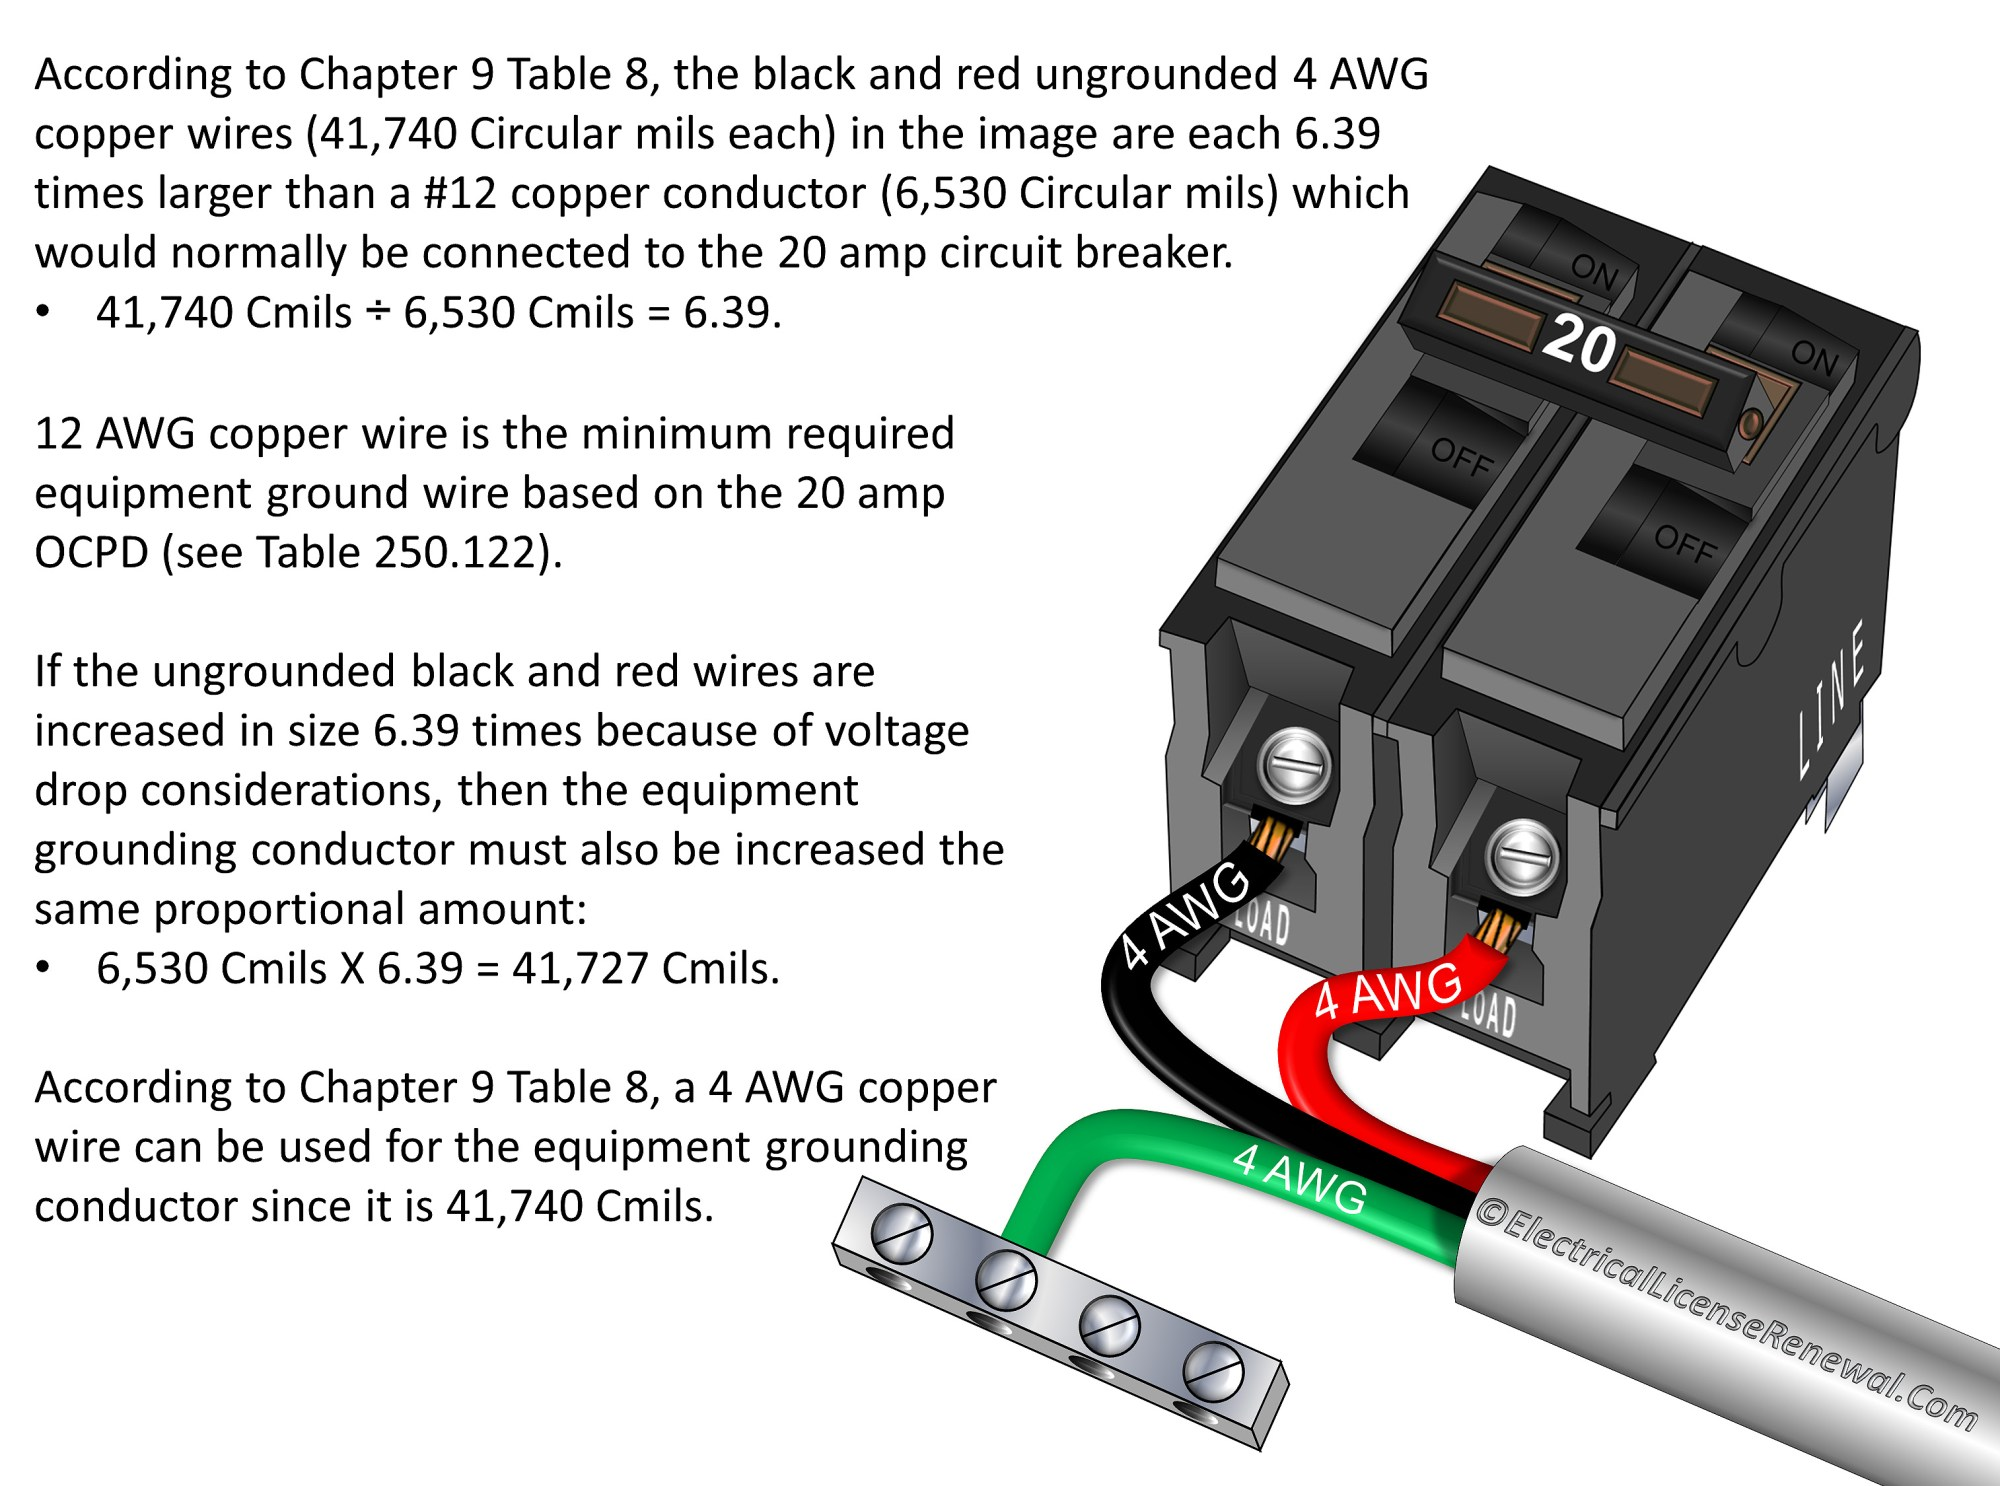 hight resolution of 250 122 b size of equipment grounding conductors increased in size ungrounded power cord wiring diagram